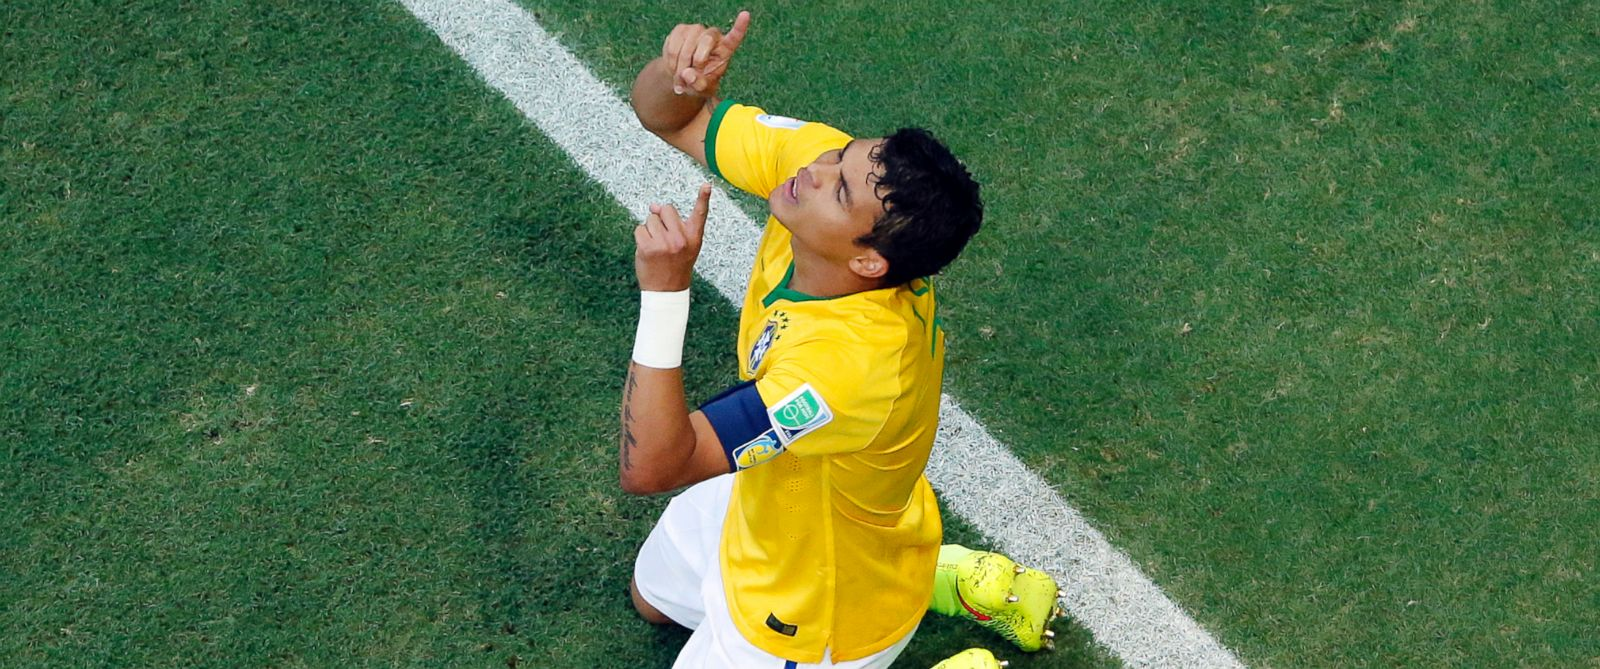 PHOTO: Brazils Thiago Silva celebrates after scoring his sides first goal during the World Cup quarterfinal soccer match between Brazil and Colombia at the Arena Castelao in Fortaleza, Brazil, July 4, 2014.